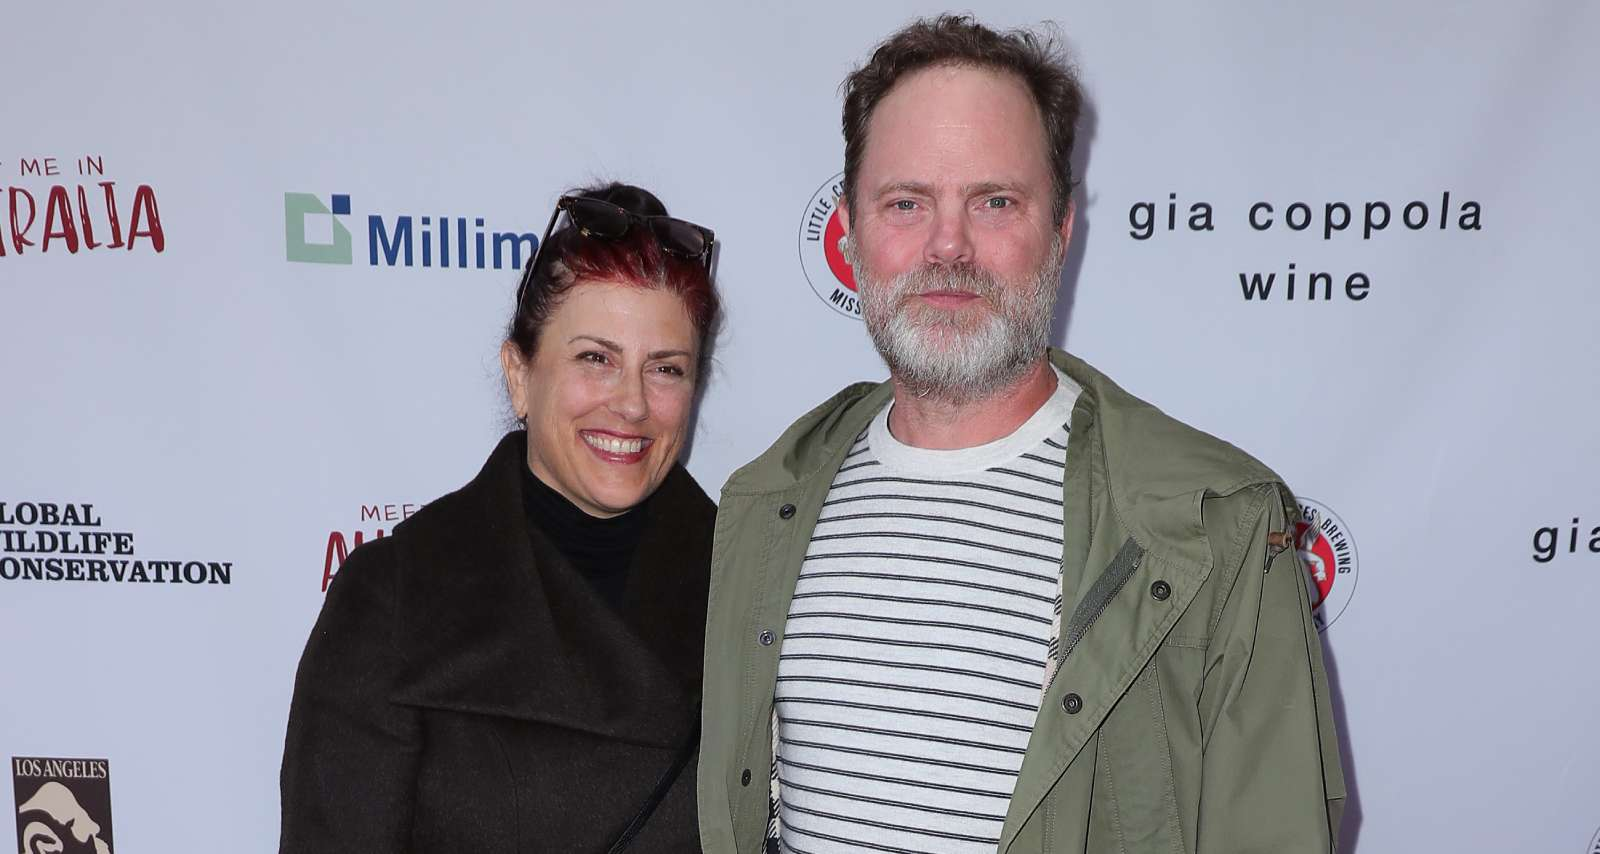 Holiday Reinhorn Wiki, Age, Son, Parents, Siblings, Family, Education, Author and Facts About Rainn Wilson's Wife